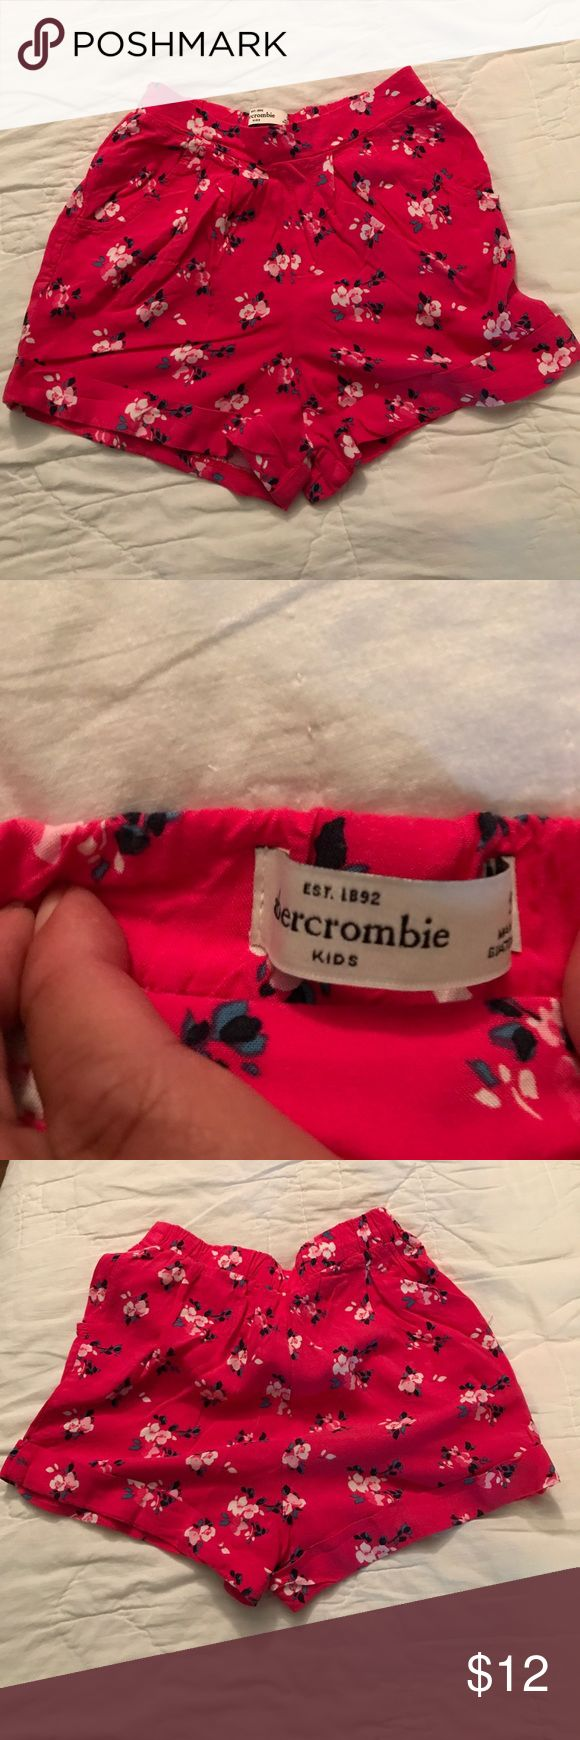 Light weight Abercrombie girls shorts Dark pink with flowers accents. Flowers are white, pink, & navy. Super lightweight. Like new. abercrombie kids Bottoms Shorts